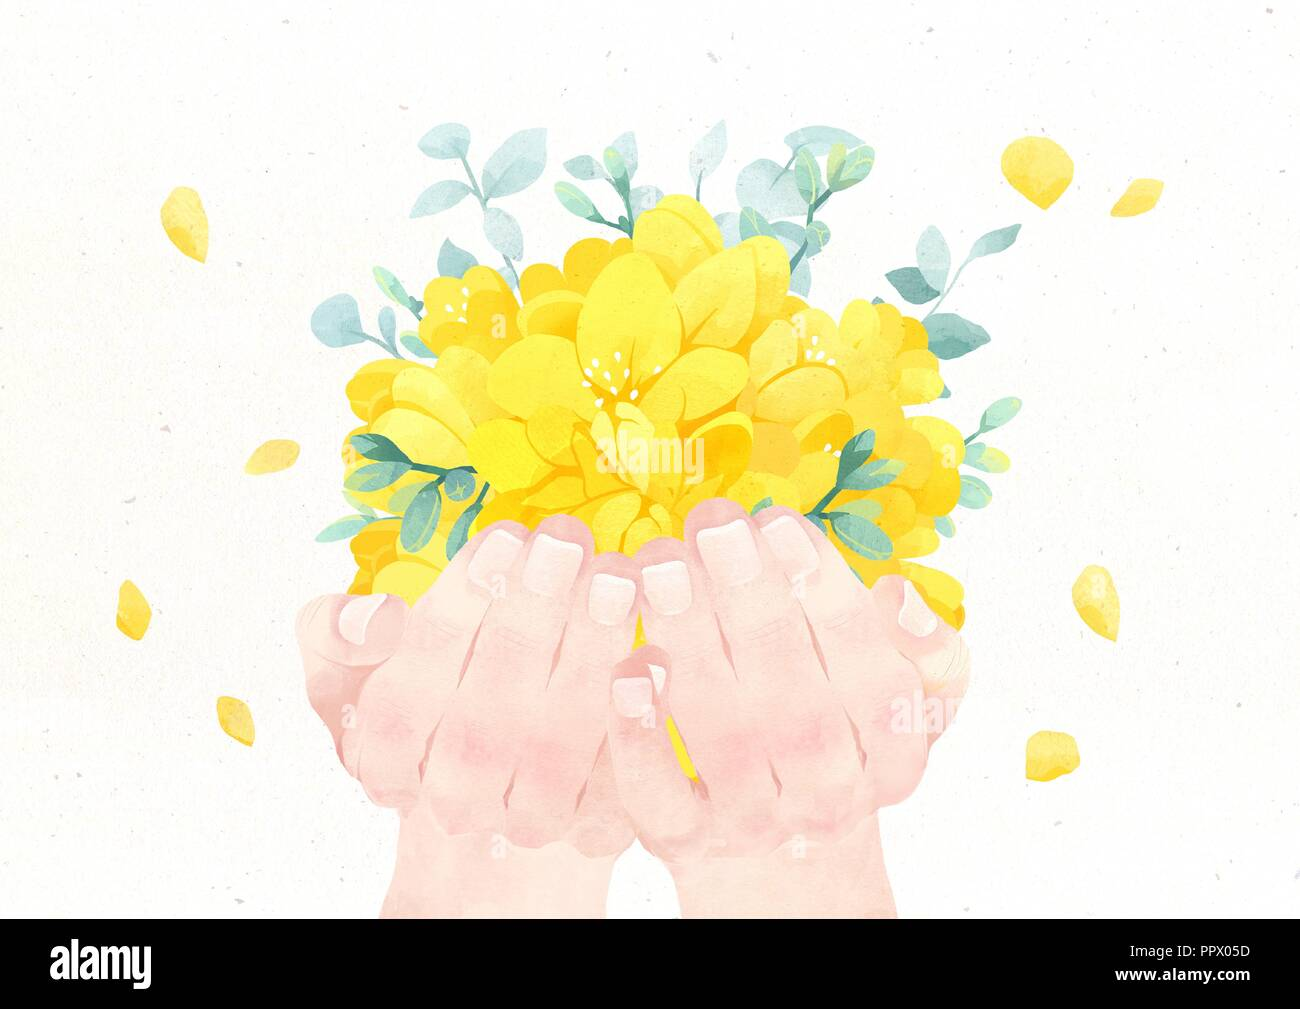 Hands Holding Something Watercolor Hands Drawing Vector Illustration